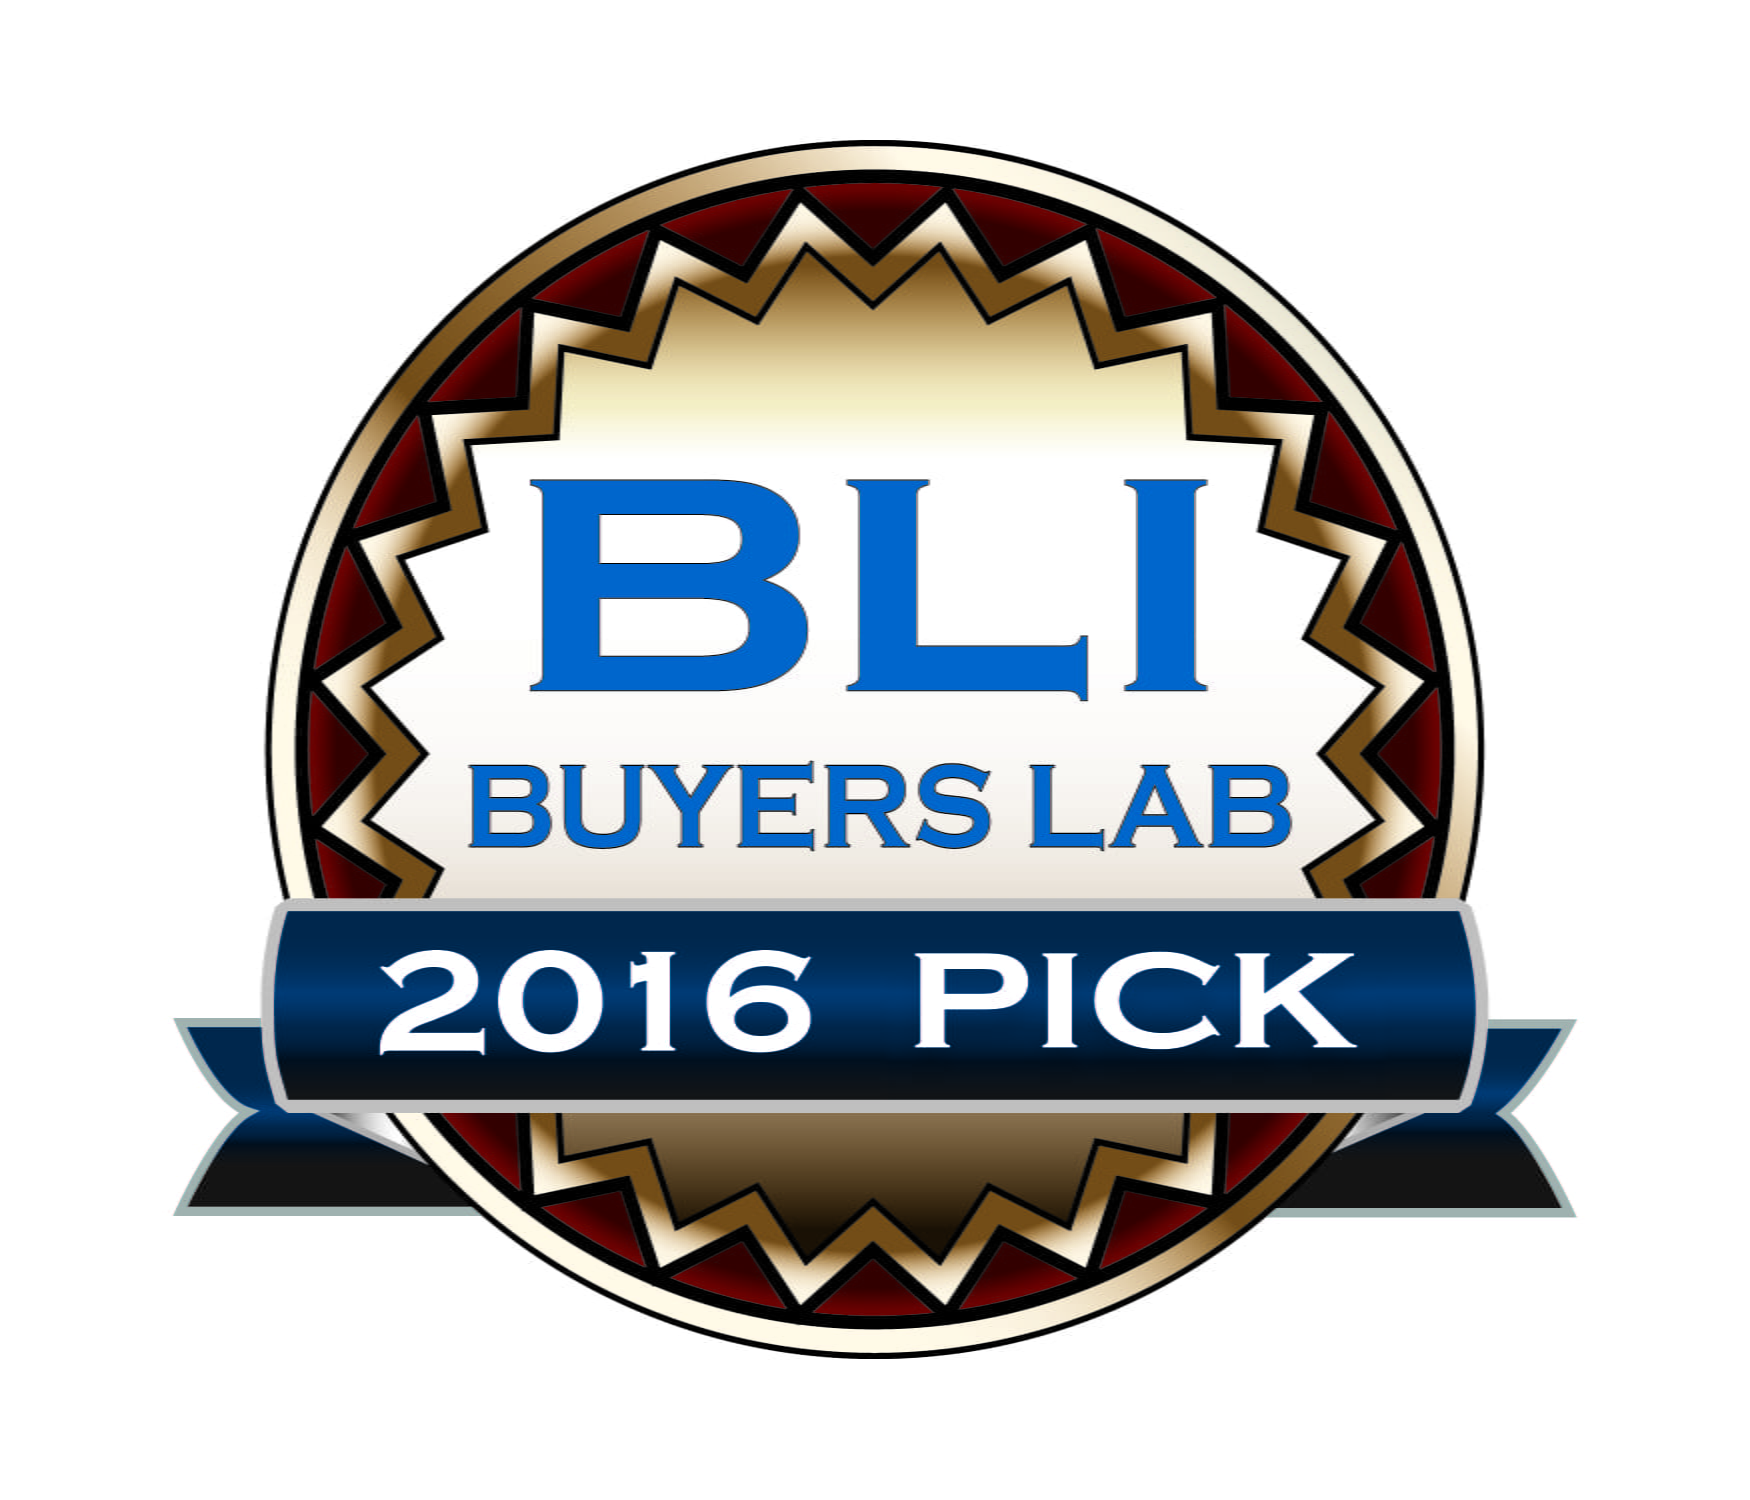 Logotyp BLI Buyers Lab 2016